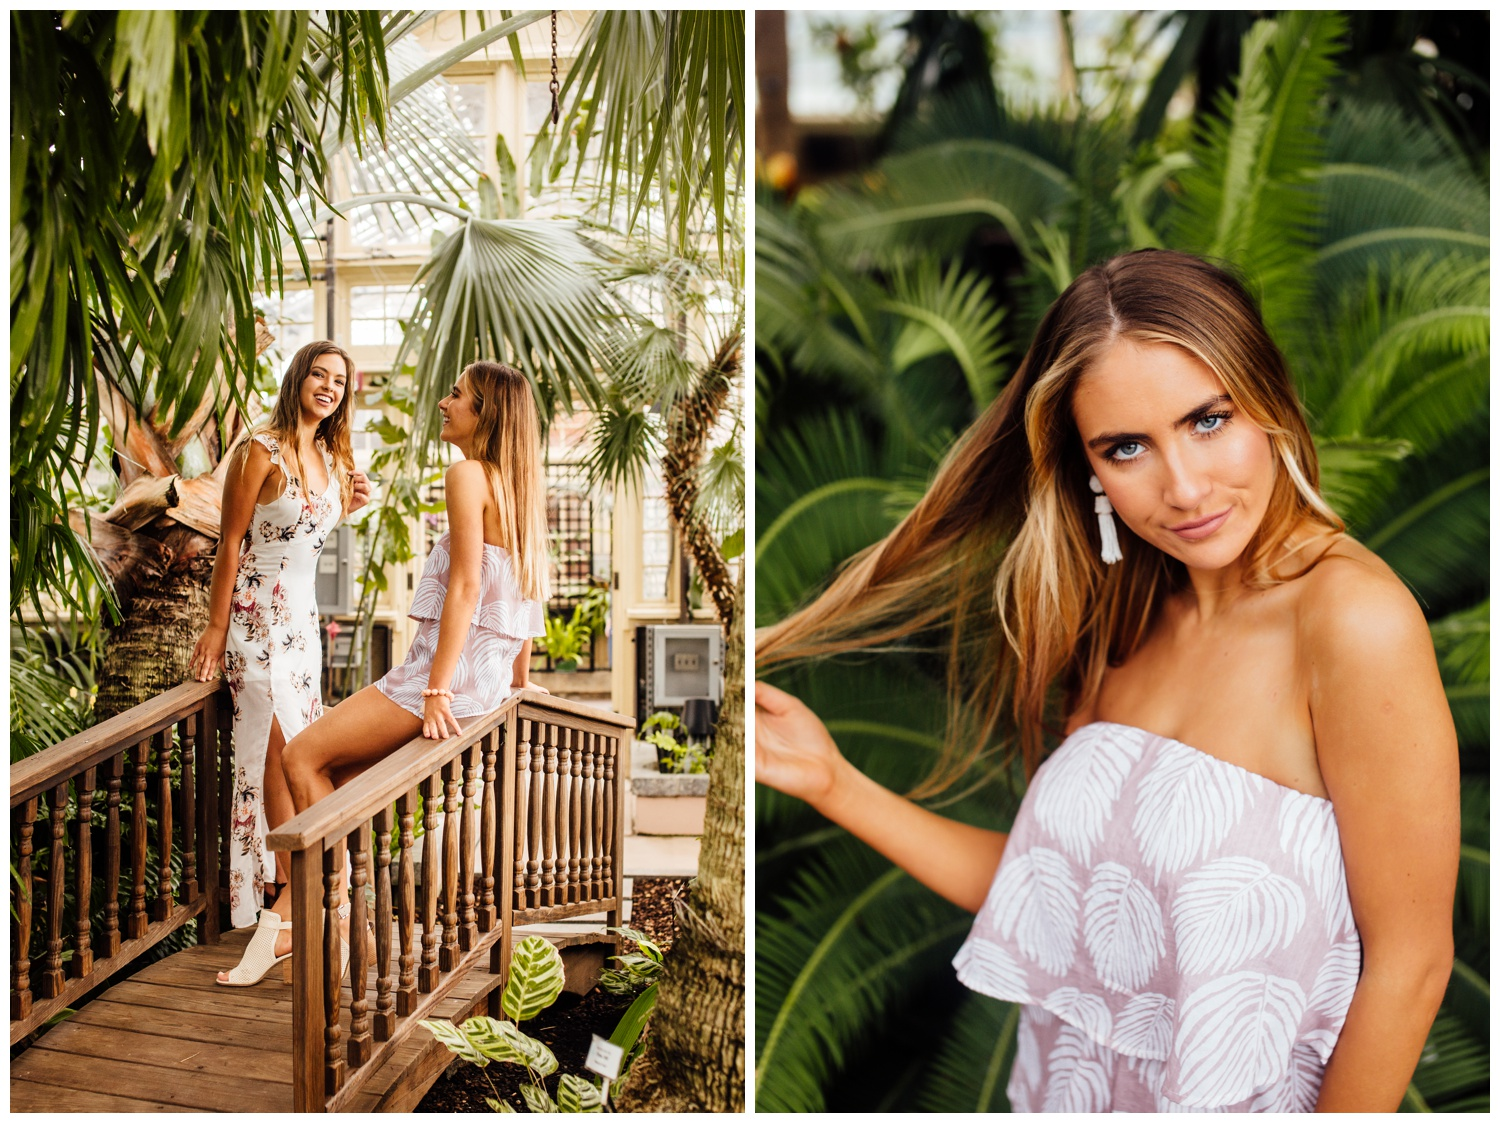 summer-styled-shoot-baltimore-maryland-boutique- rawlings-conservatory-emma-jean-photo_0011.jpg